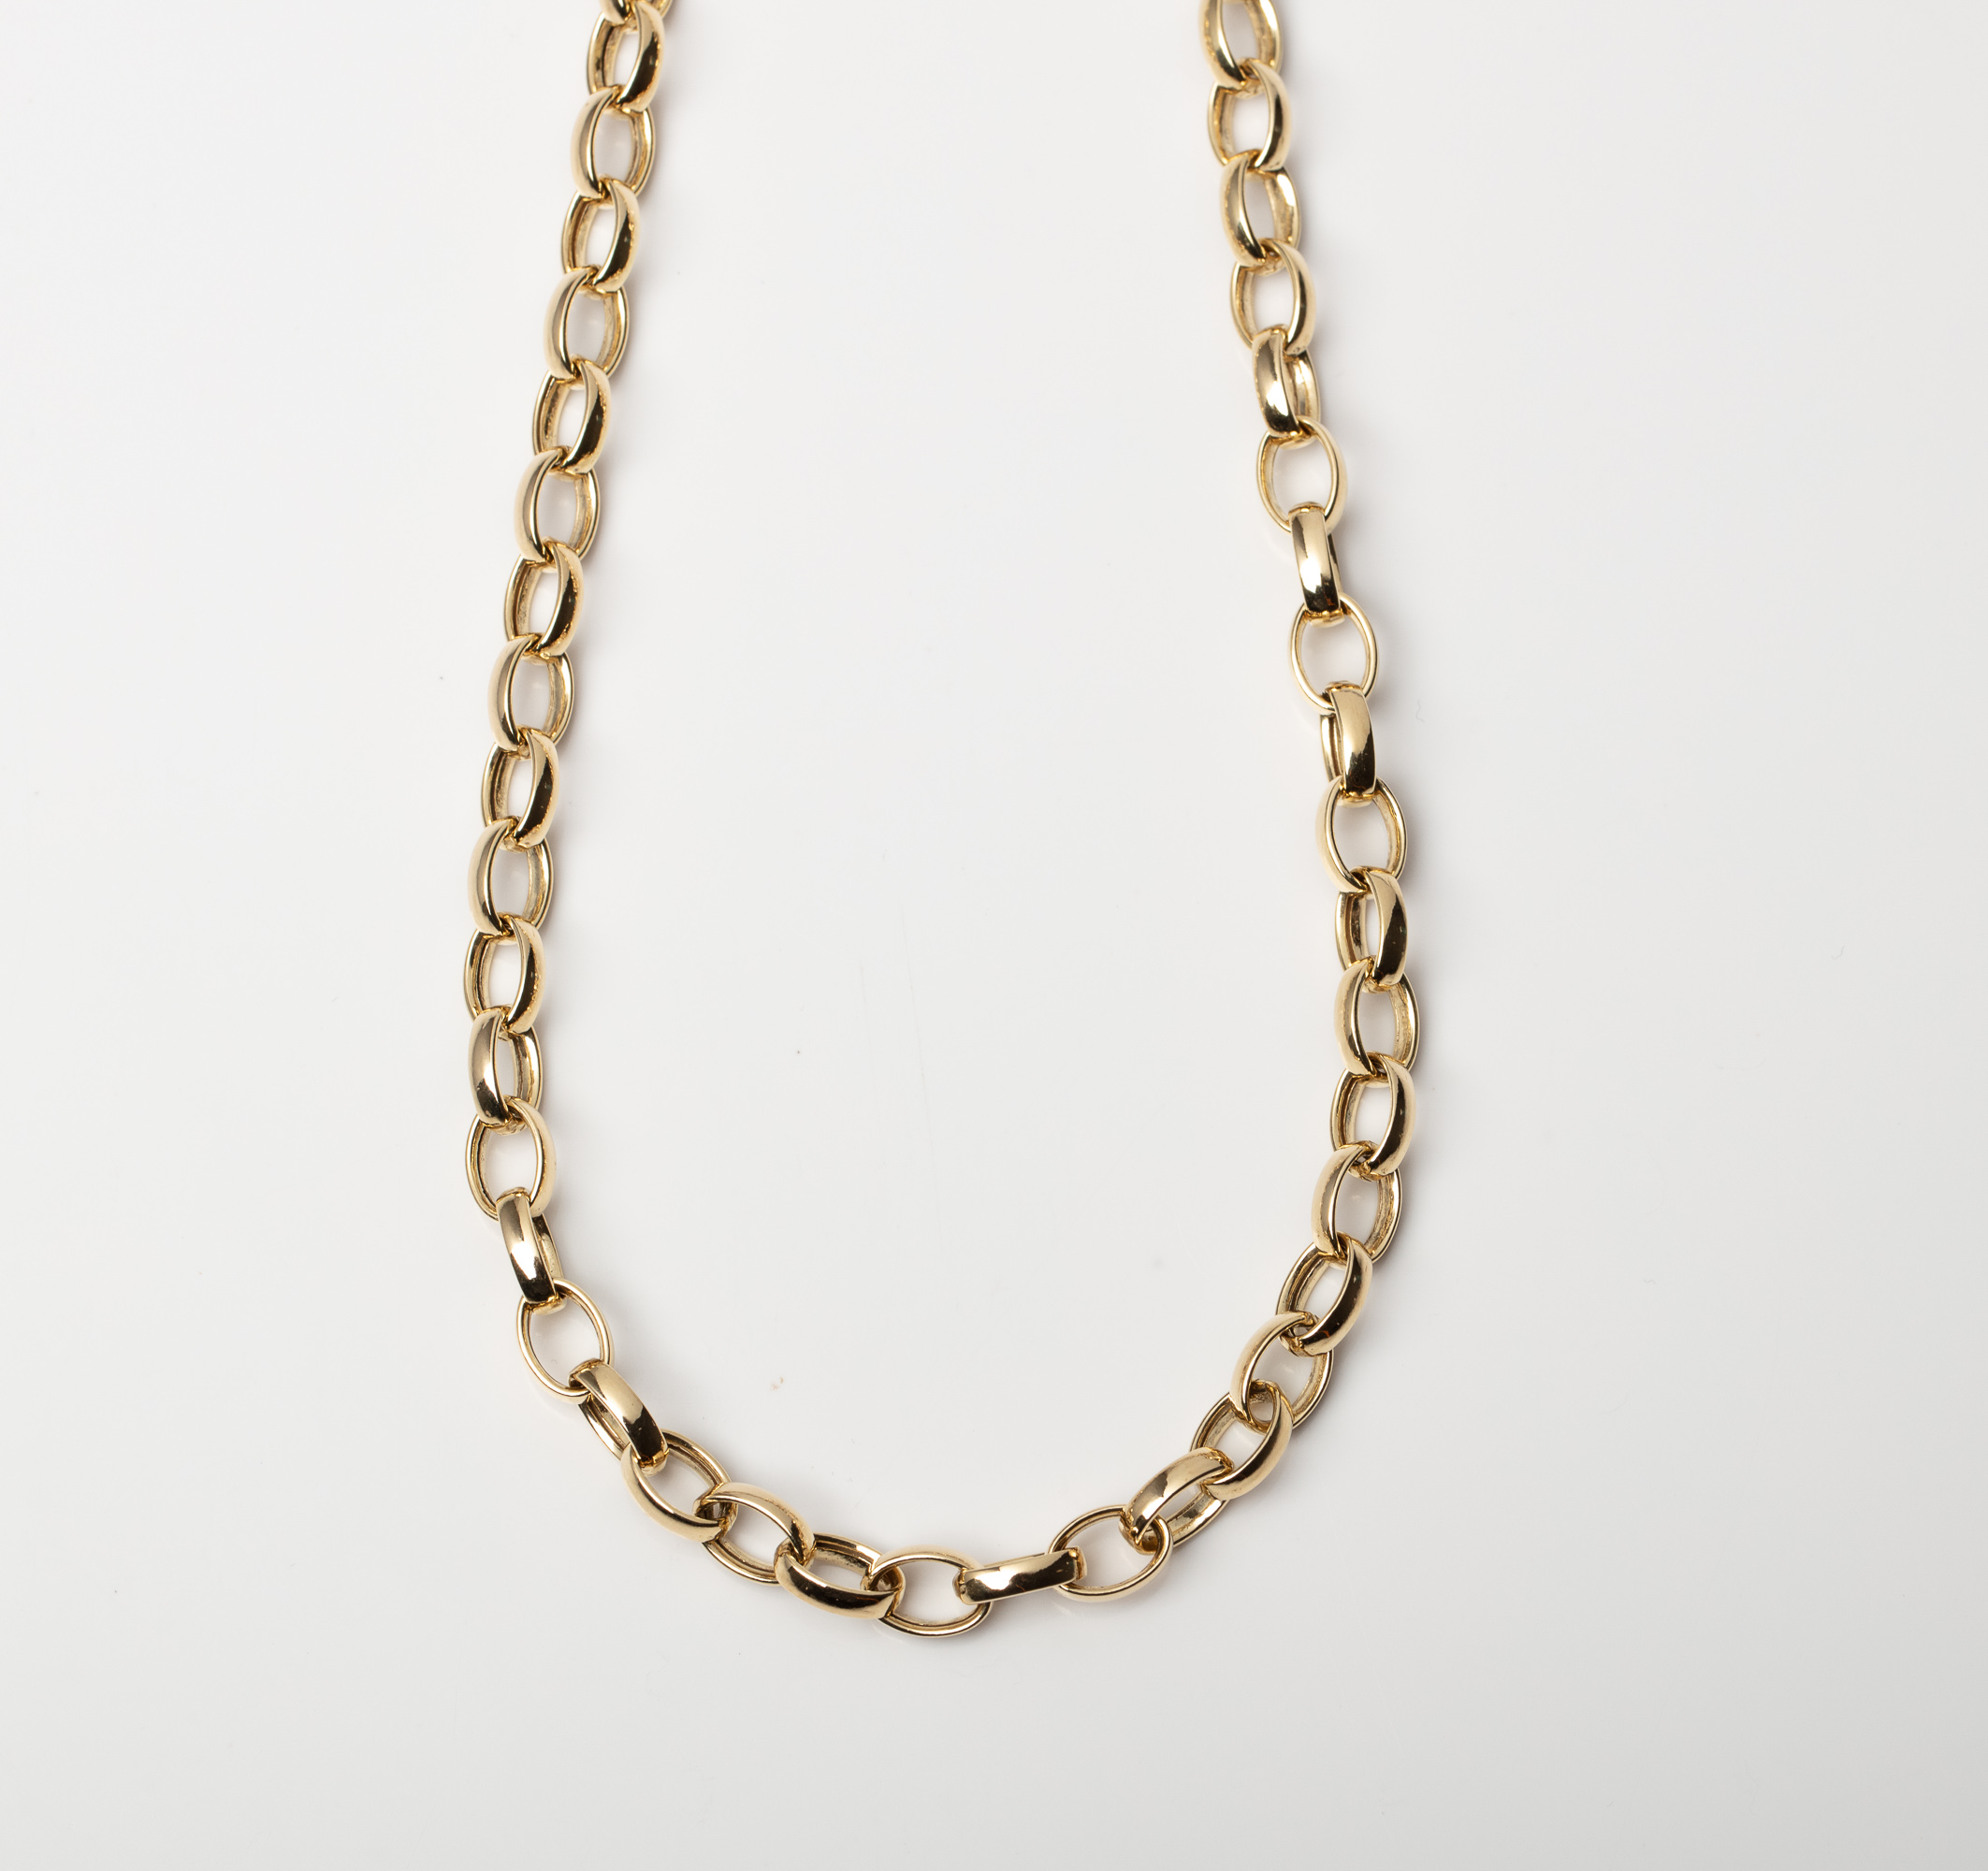 A 9CT GOLD AND SILVER BONDED ROLO CHAIN